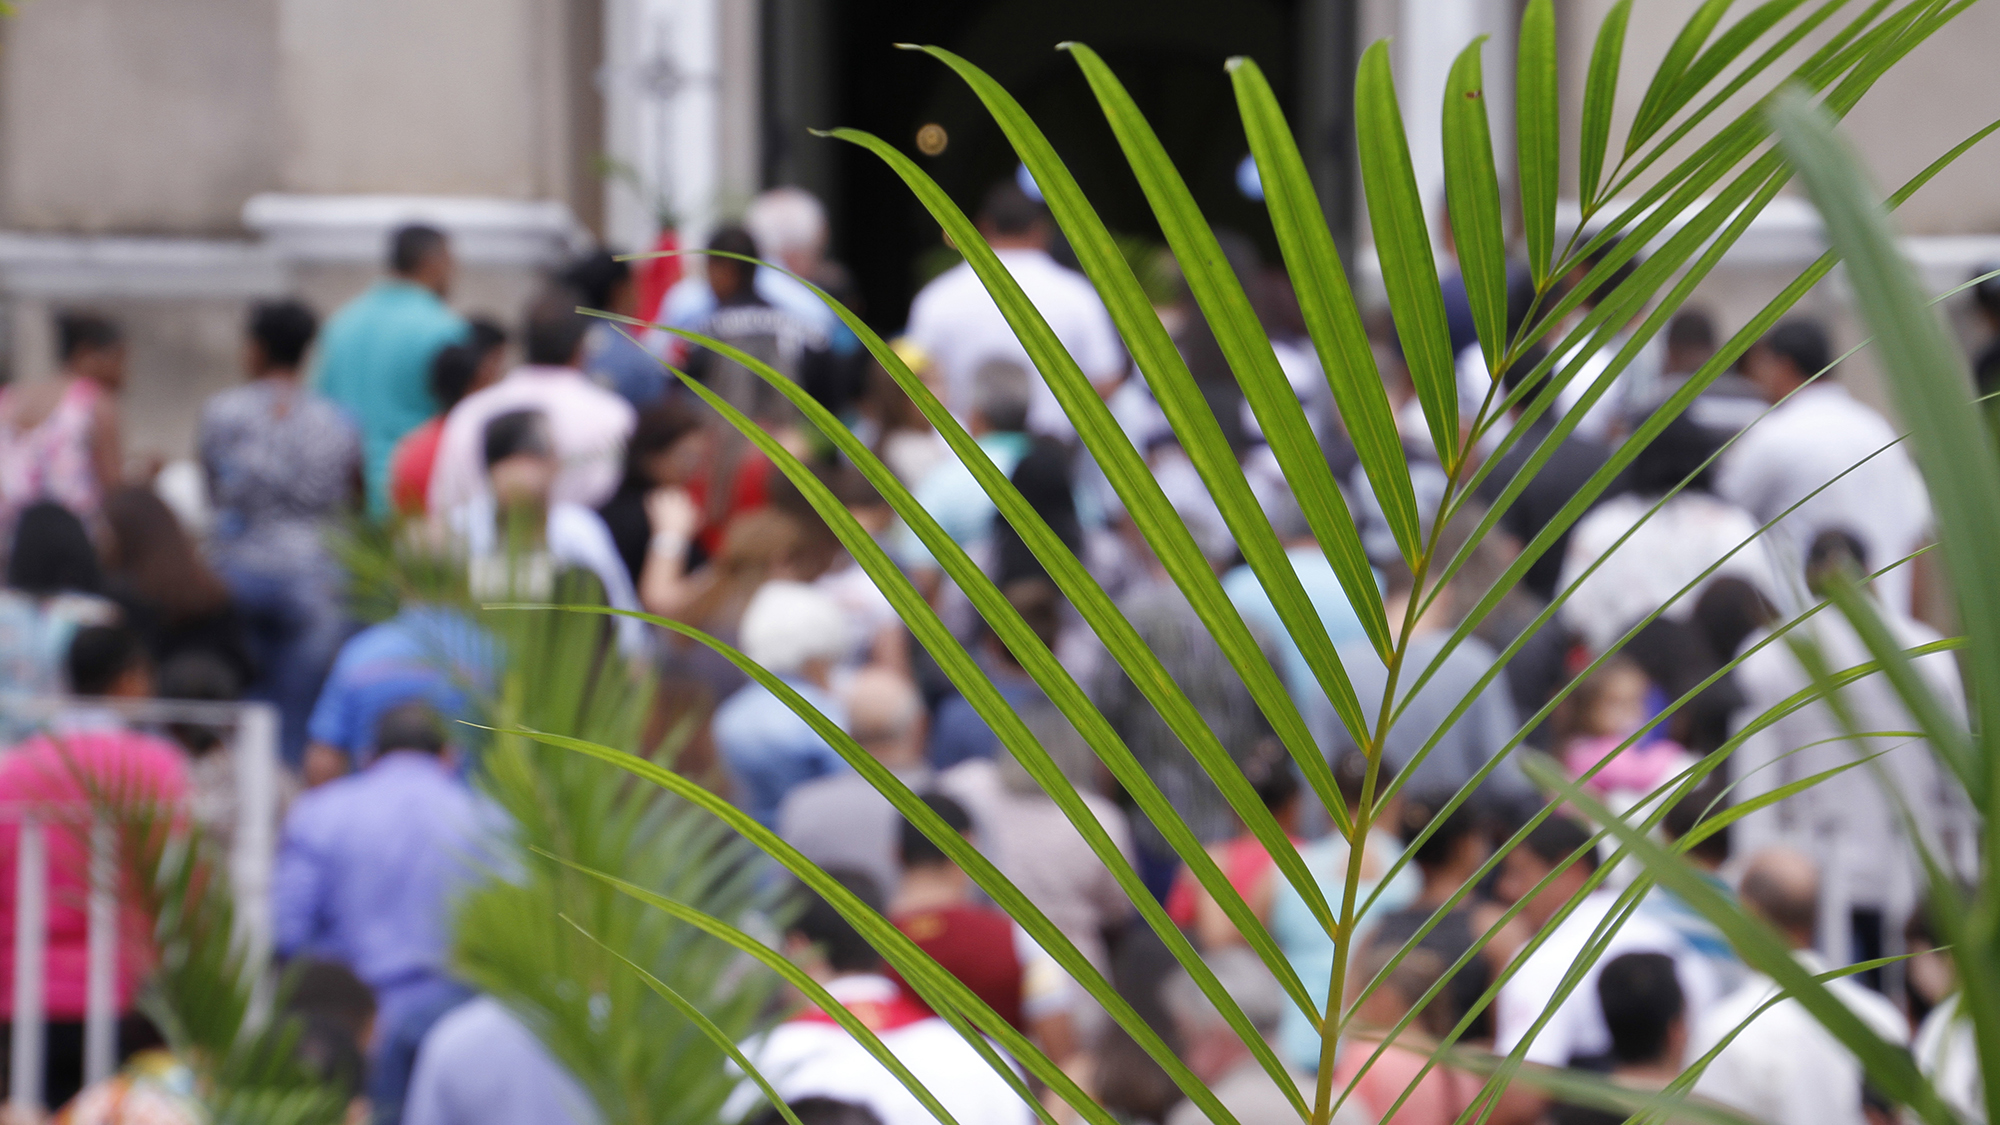 Stephen Catholic Church celebrates Palm Sunday